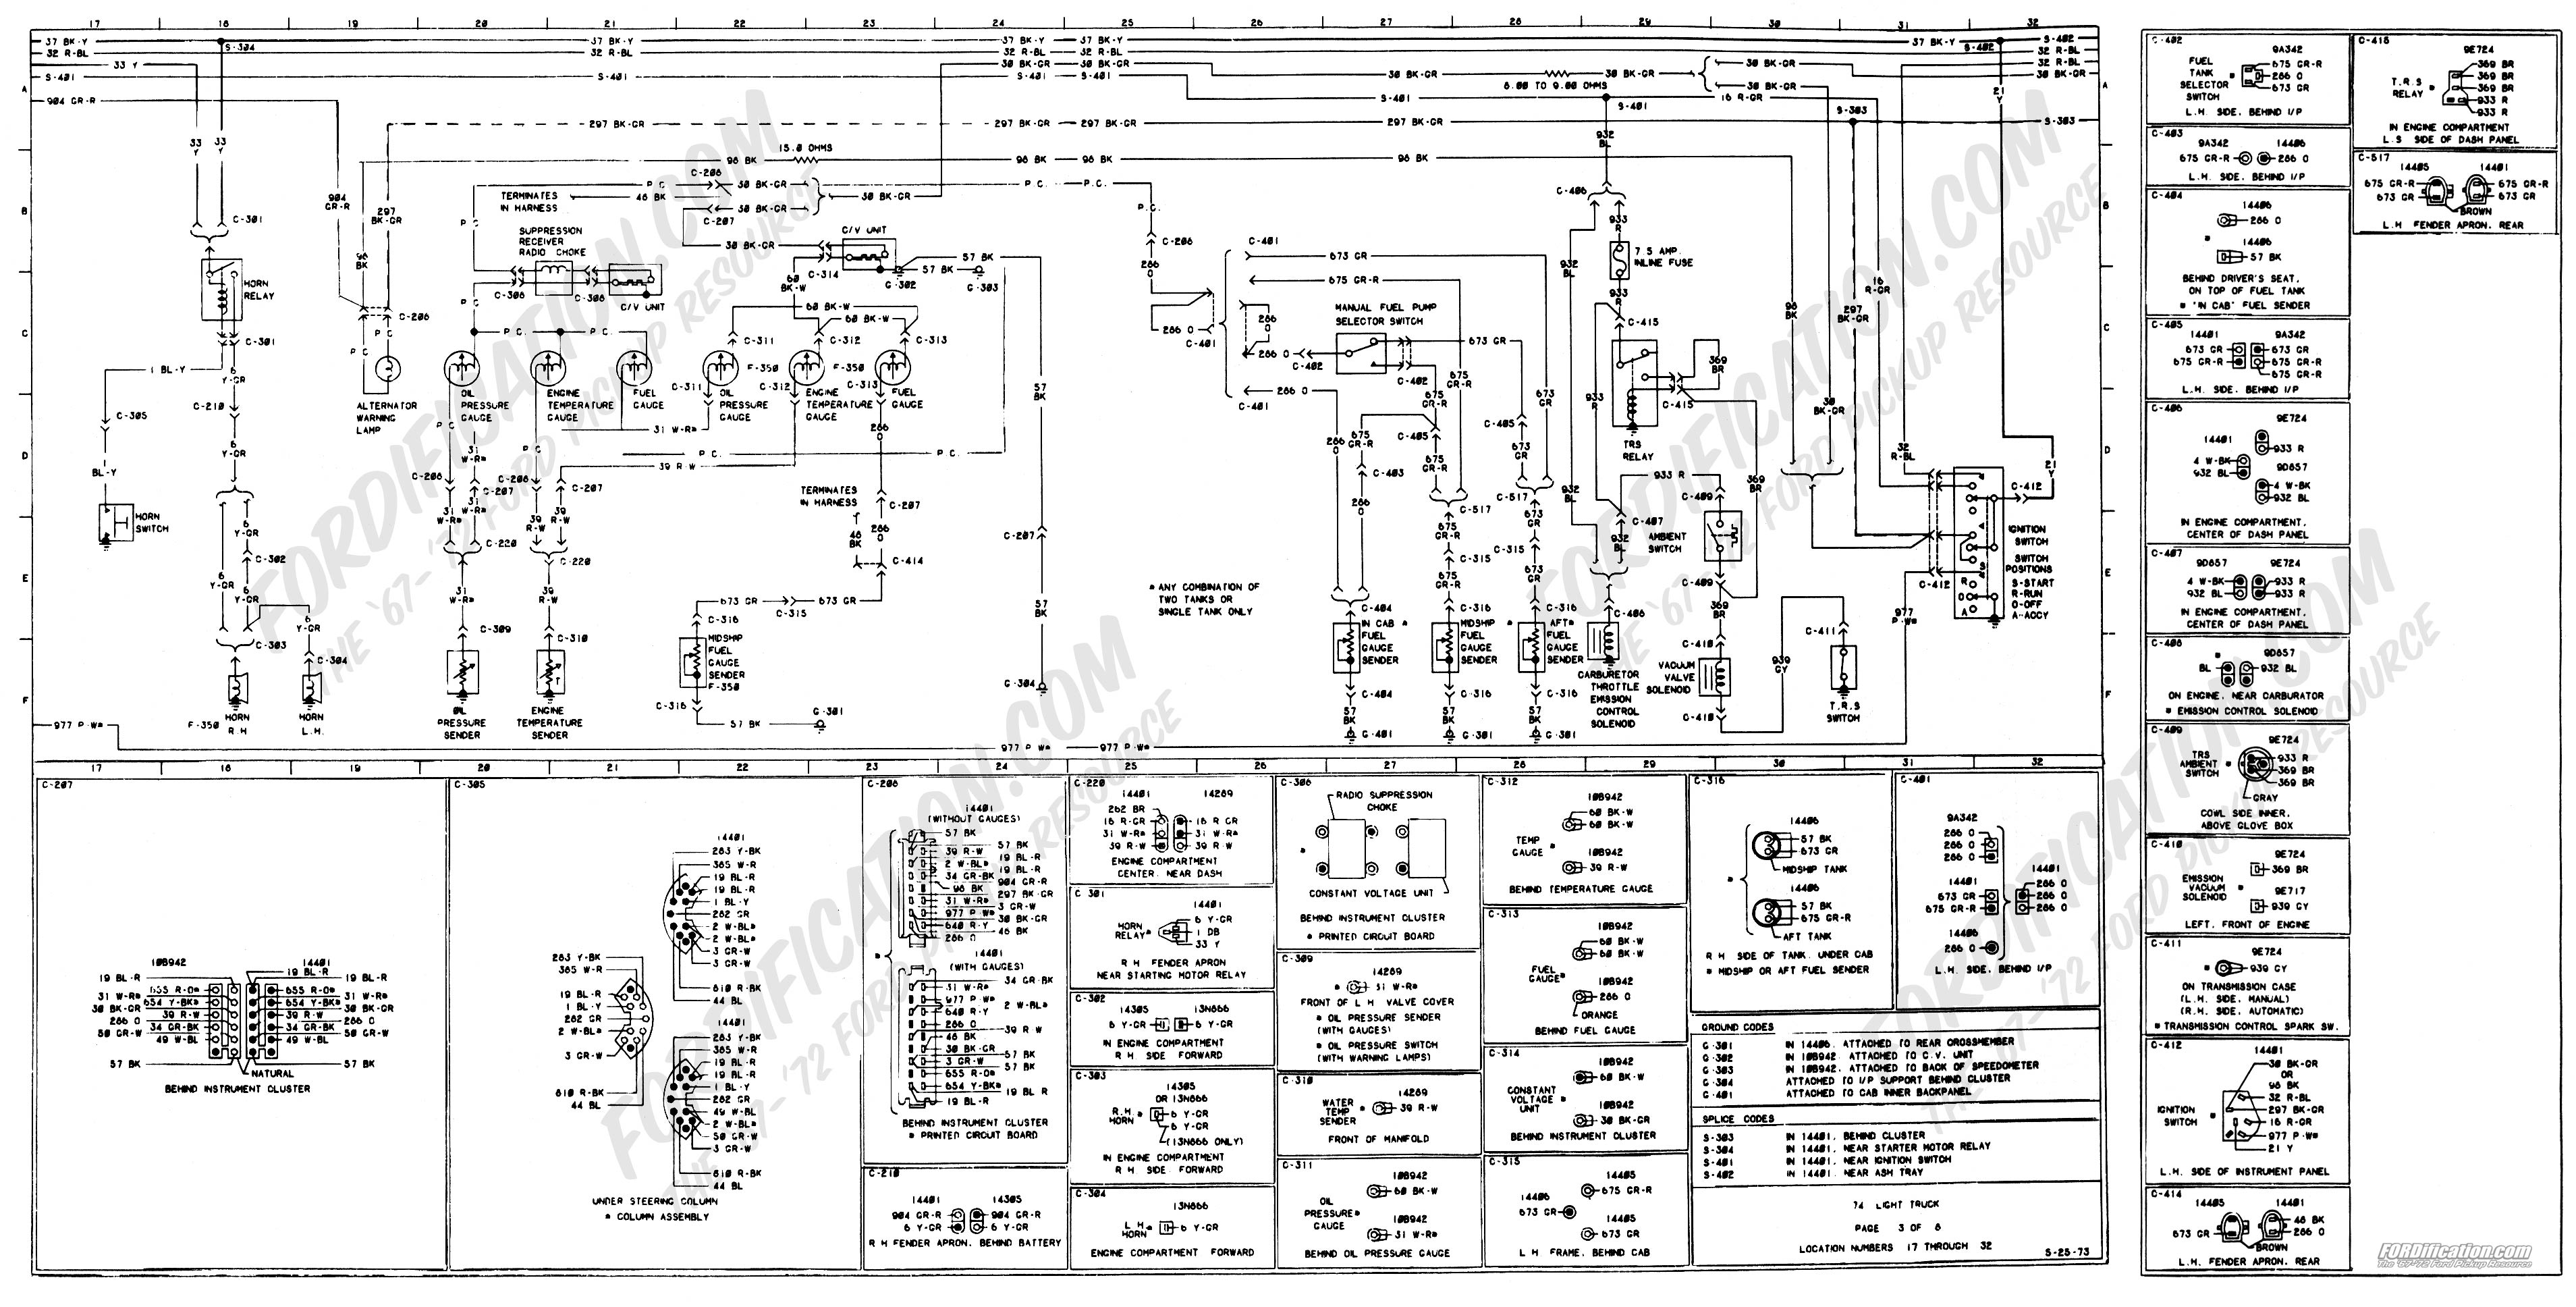 wiring_74master_3of8 1973 1979 ford truck wiring diagrams & schematics fordification net 1979 ford truck fuse box diagram at aneh.co